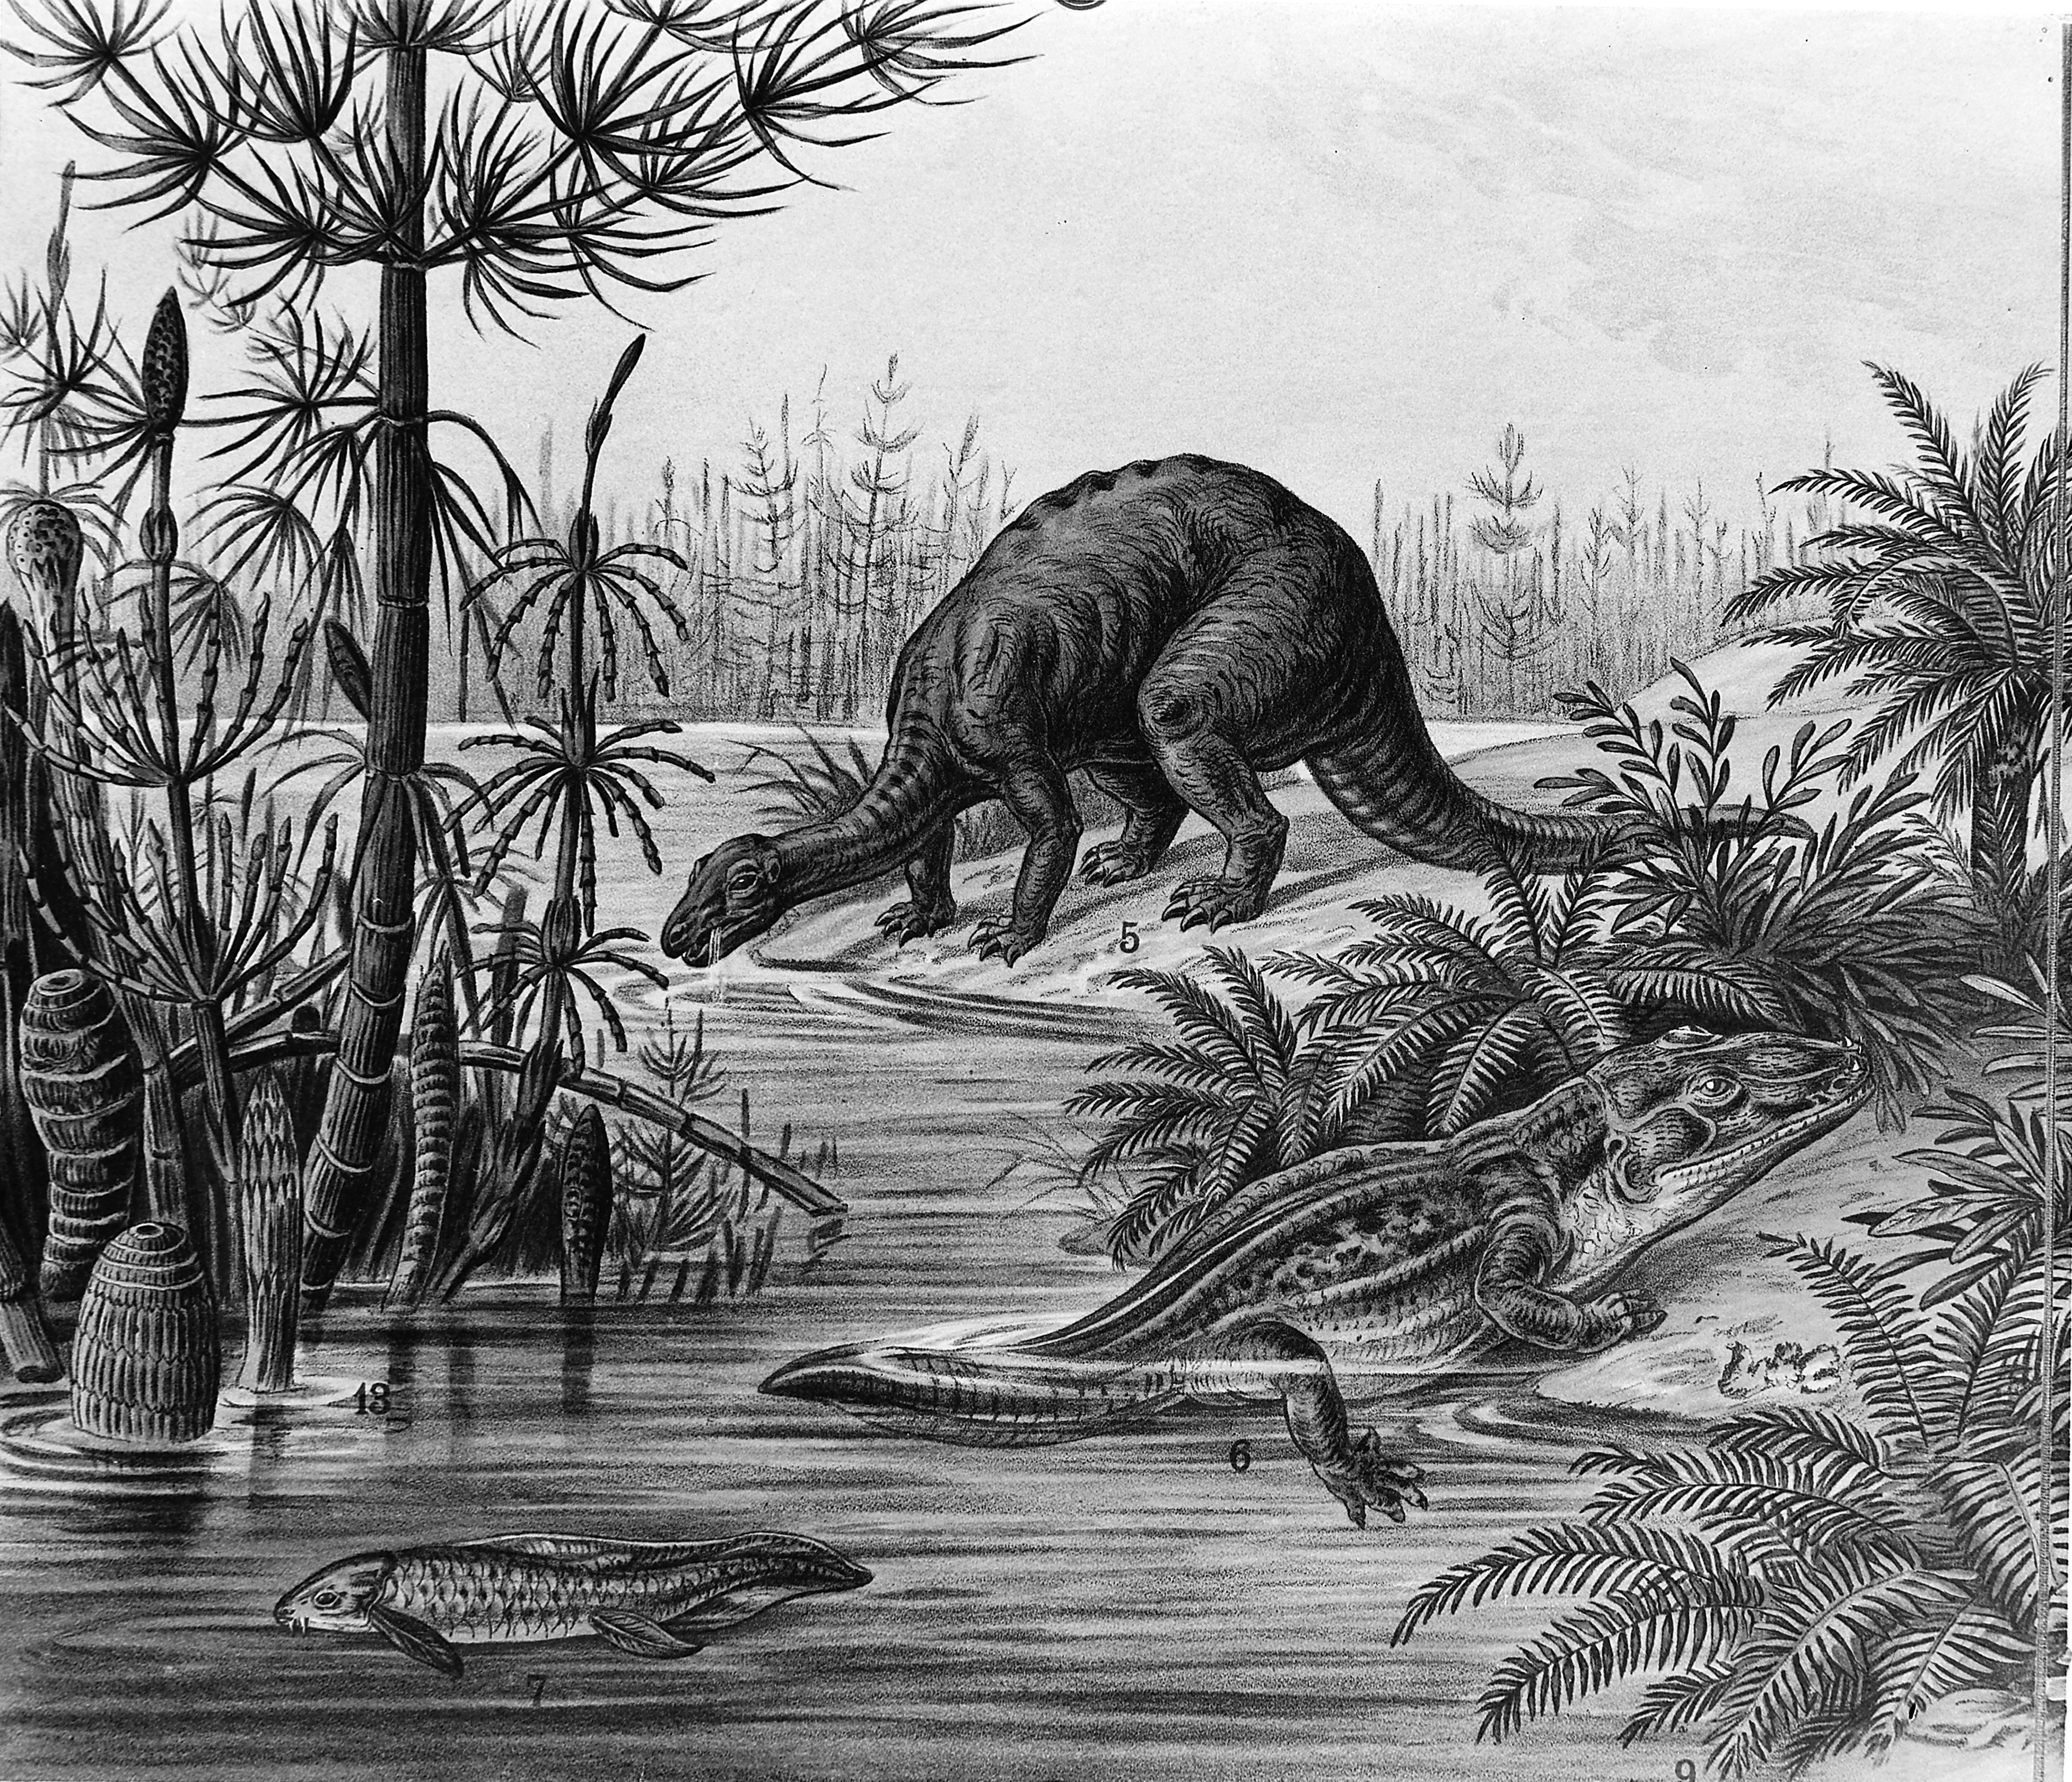 the triassic jurassic How can the answer be improved.